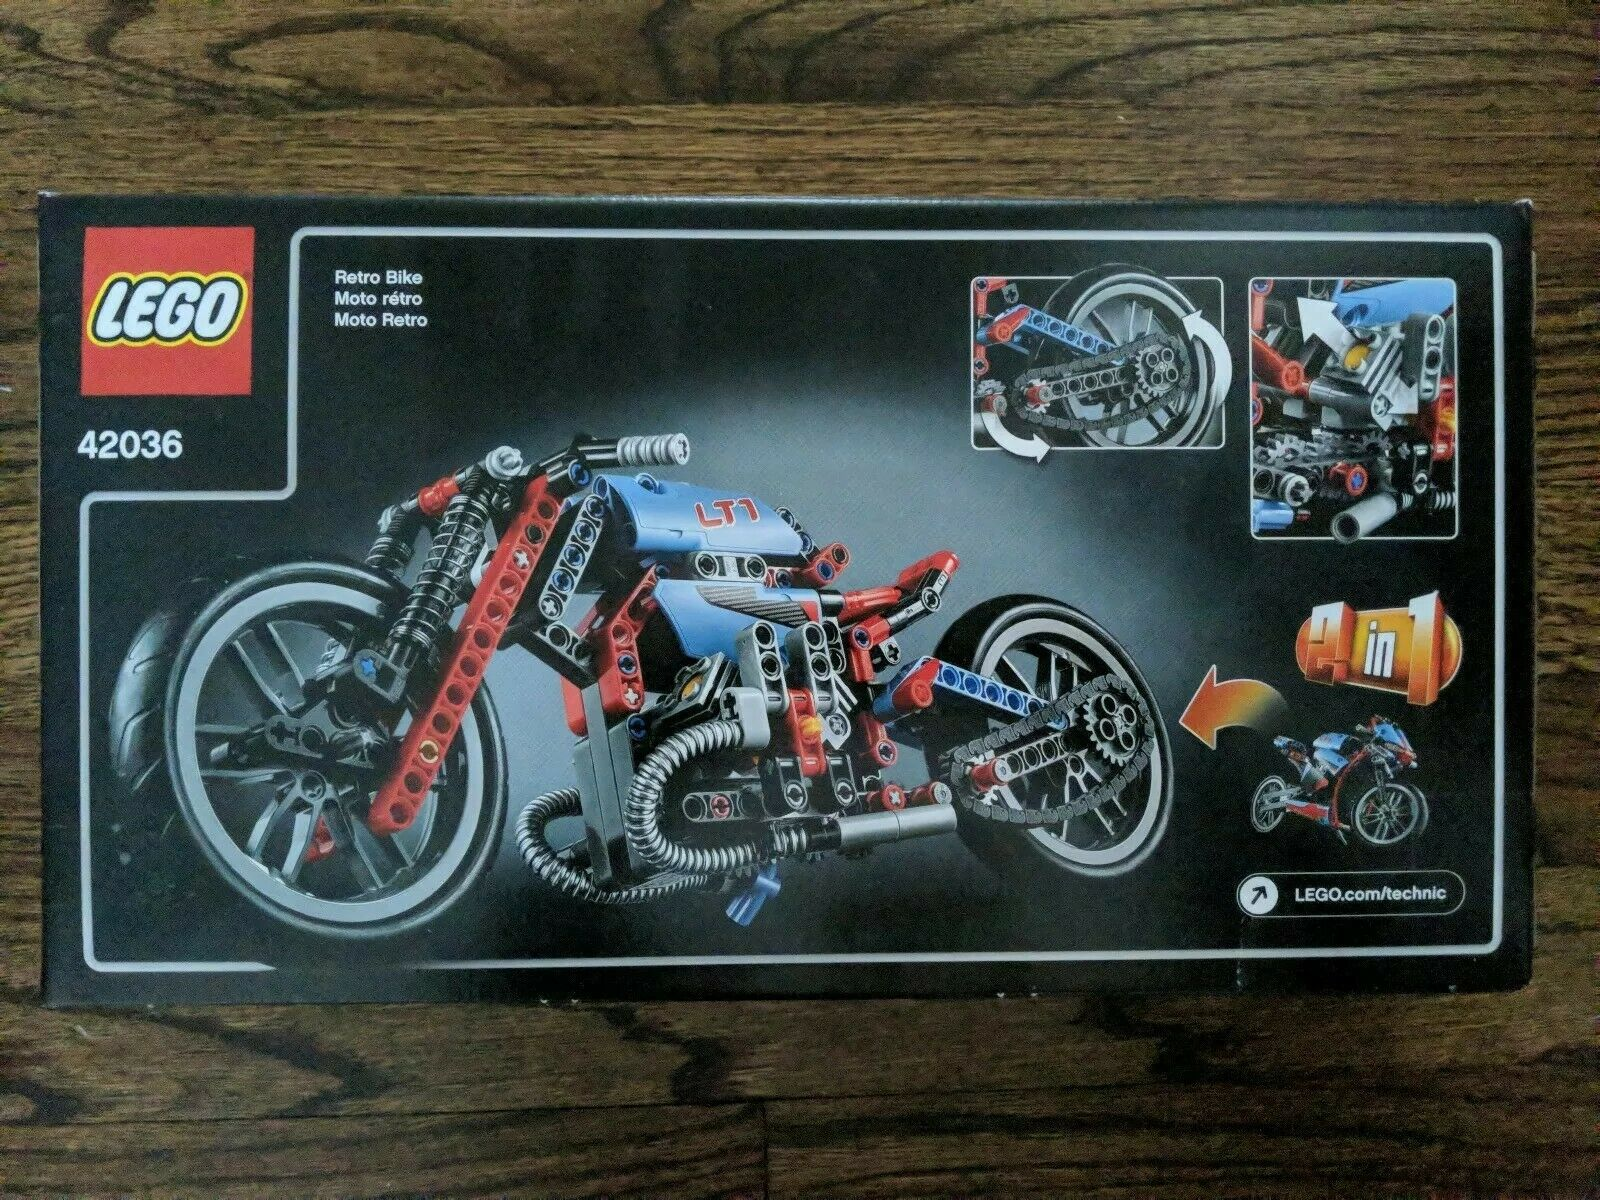 LEGO Technic Street Street Street Motorcycle 42036 - New in Box 008370